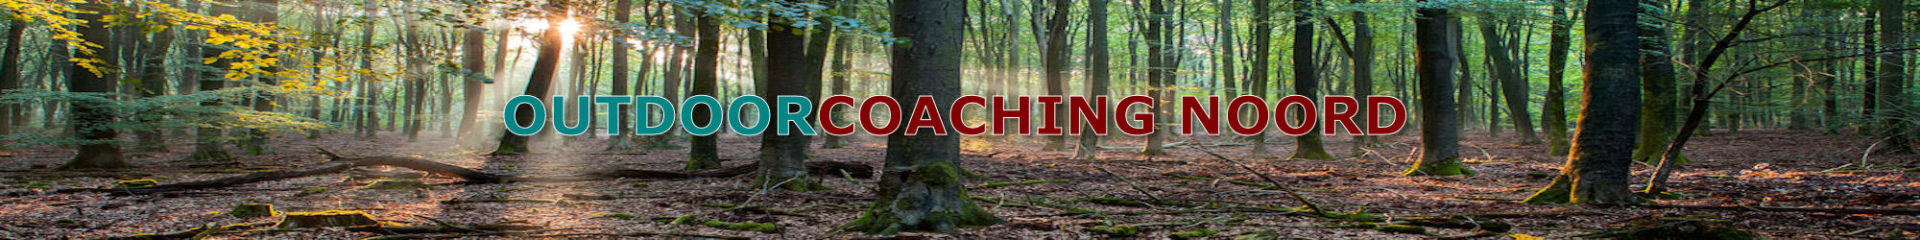 Outdoorcoaching Noord